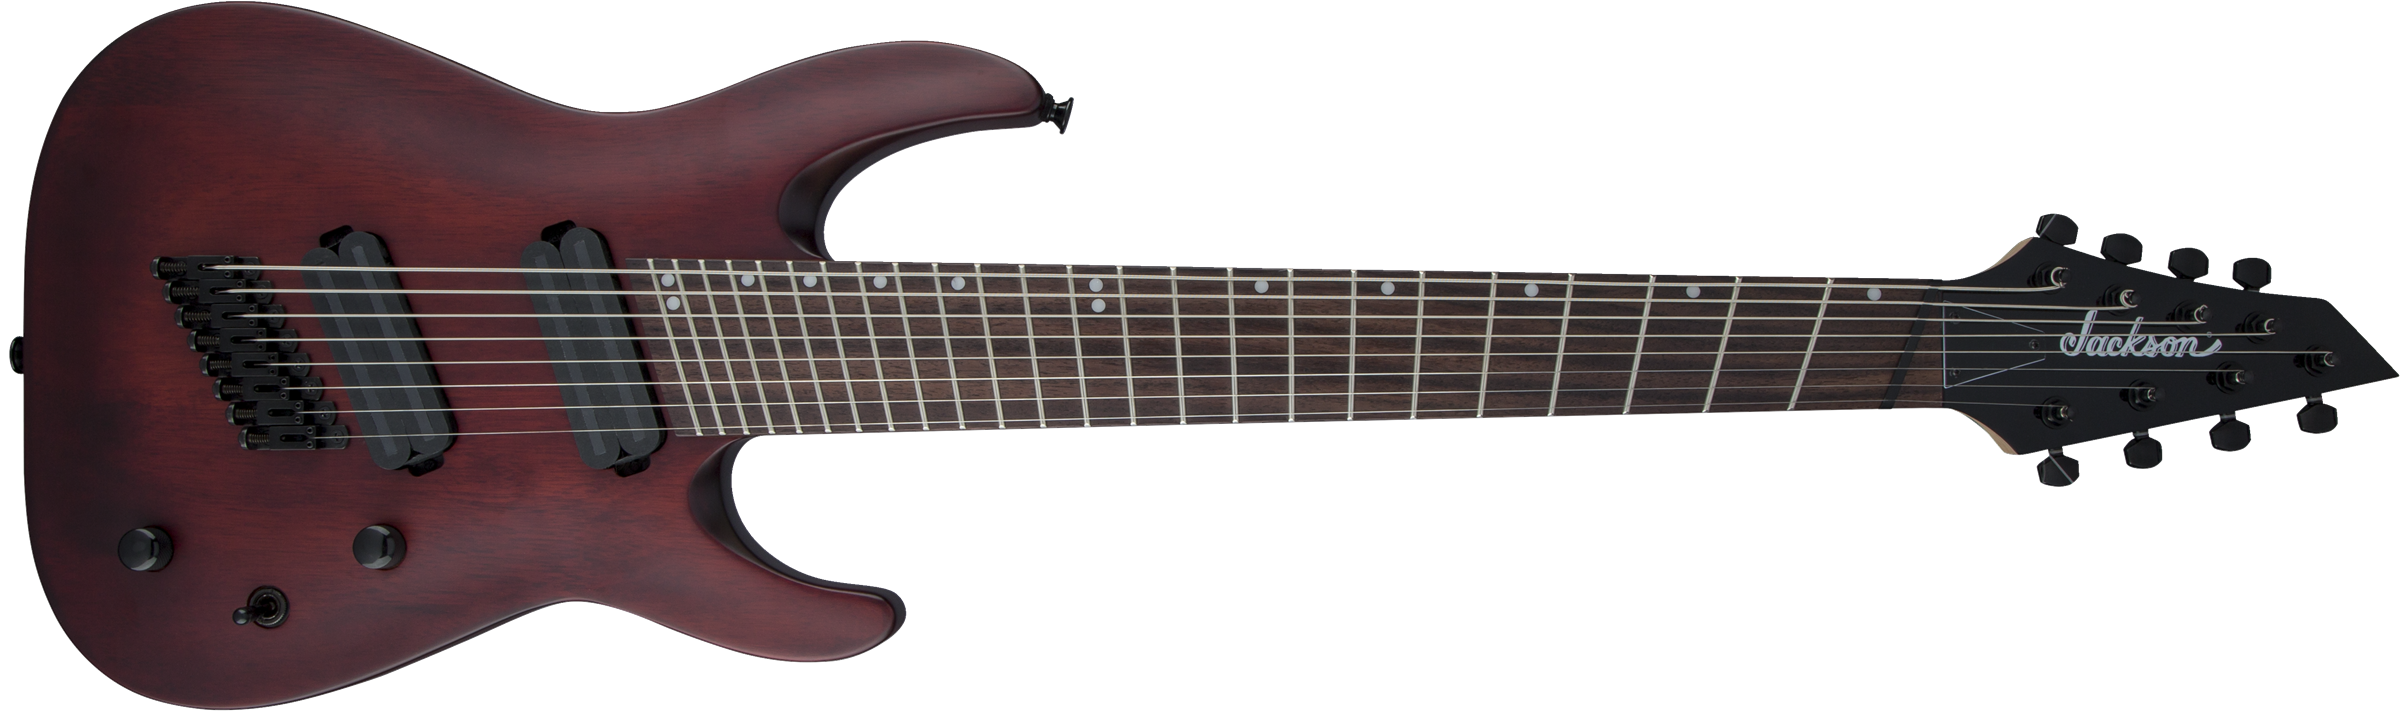 JACKSON X Series Dinky Arch Top DKAF8 MS, Dark Rosewood Fingerboard, Multi-Scale, Stained Mahogany